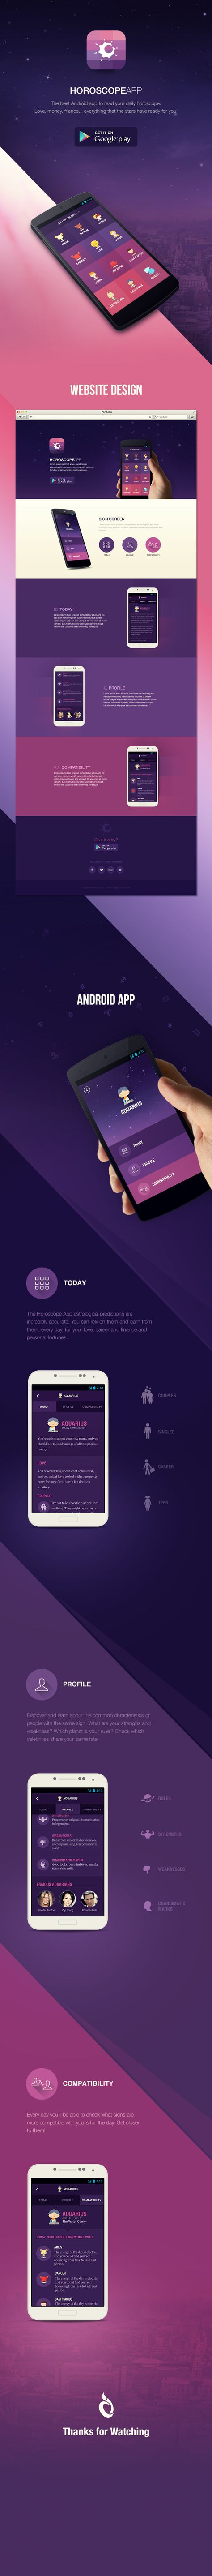 Horoscope App by Reznik Umar, designer from Bangalore, India, has worked on the UI design part of this project.